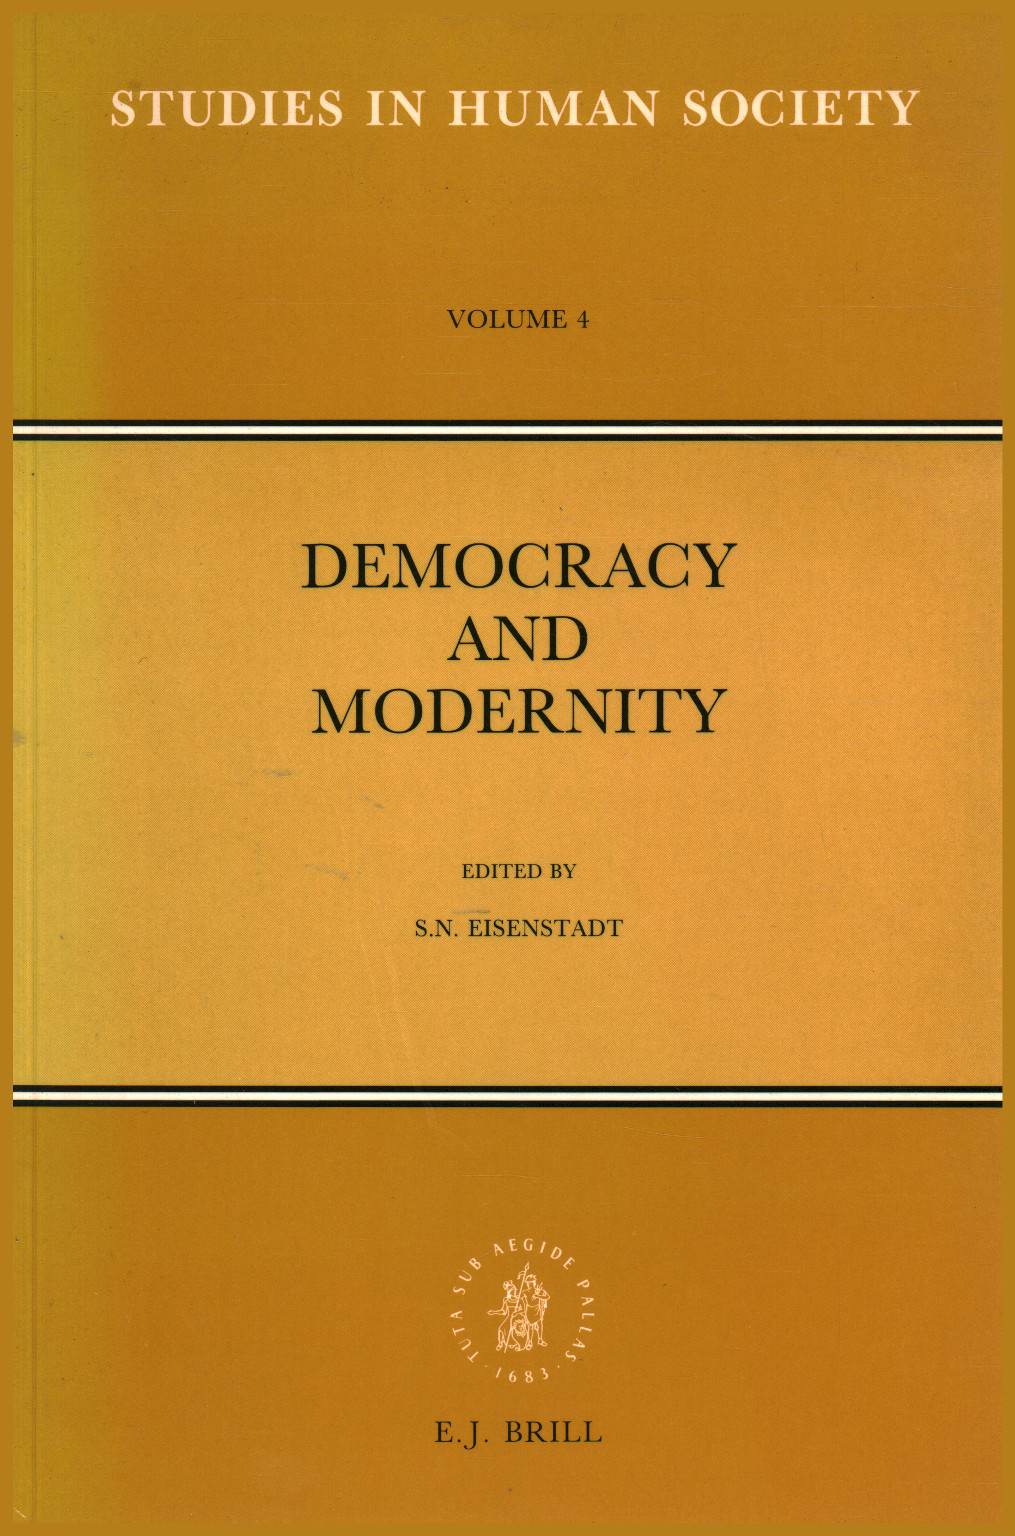 Democracy and modernity, S. N. Eisenstadt